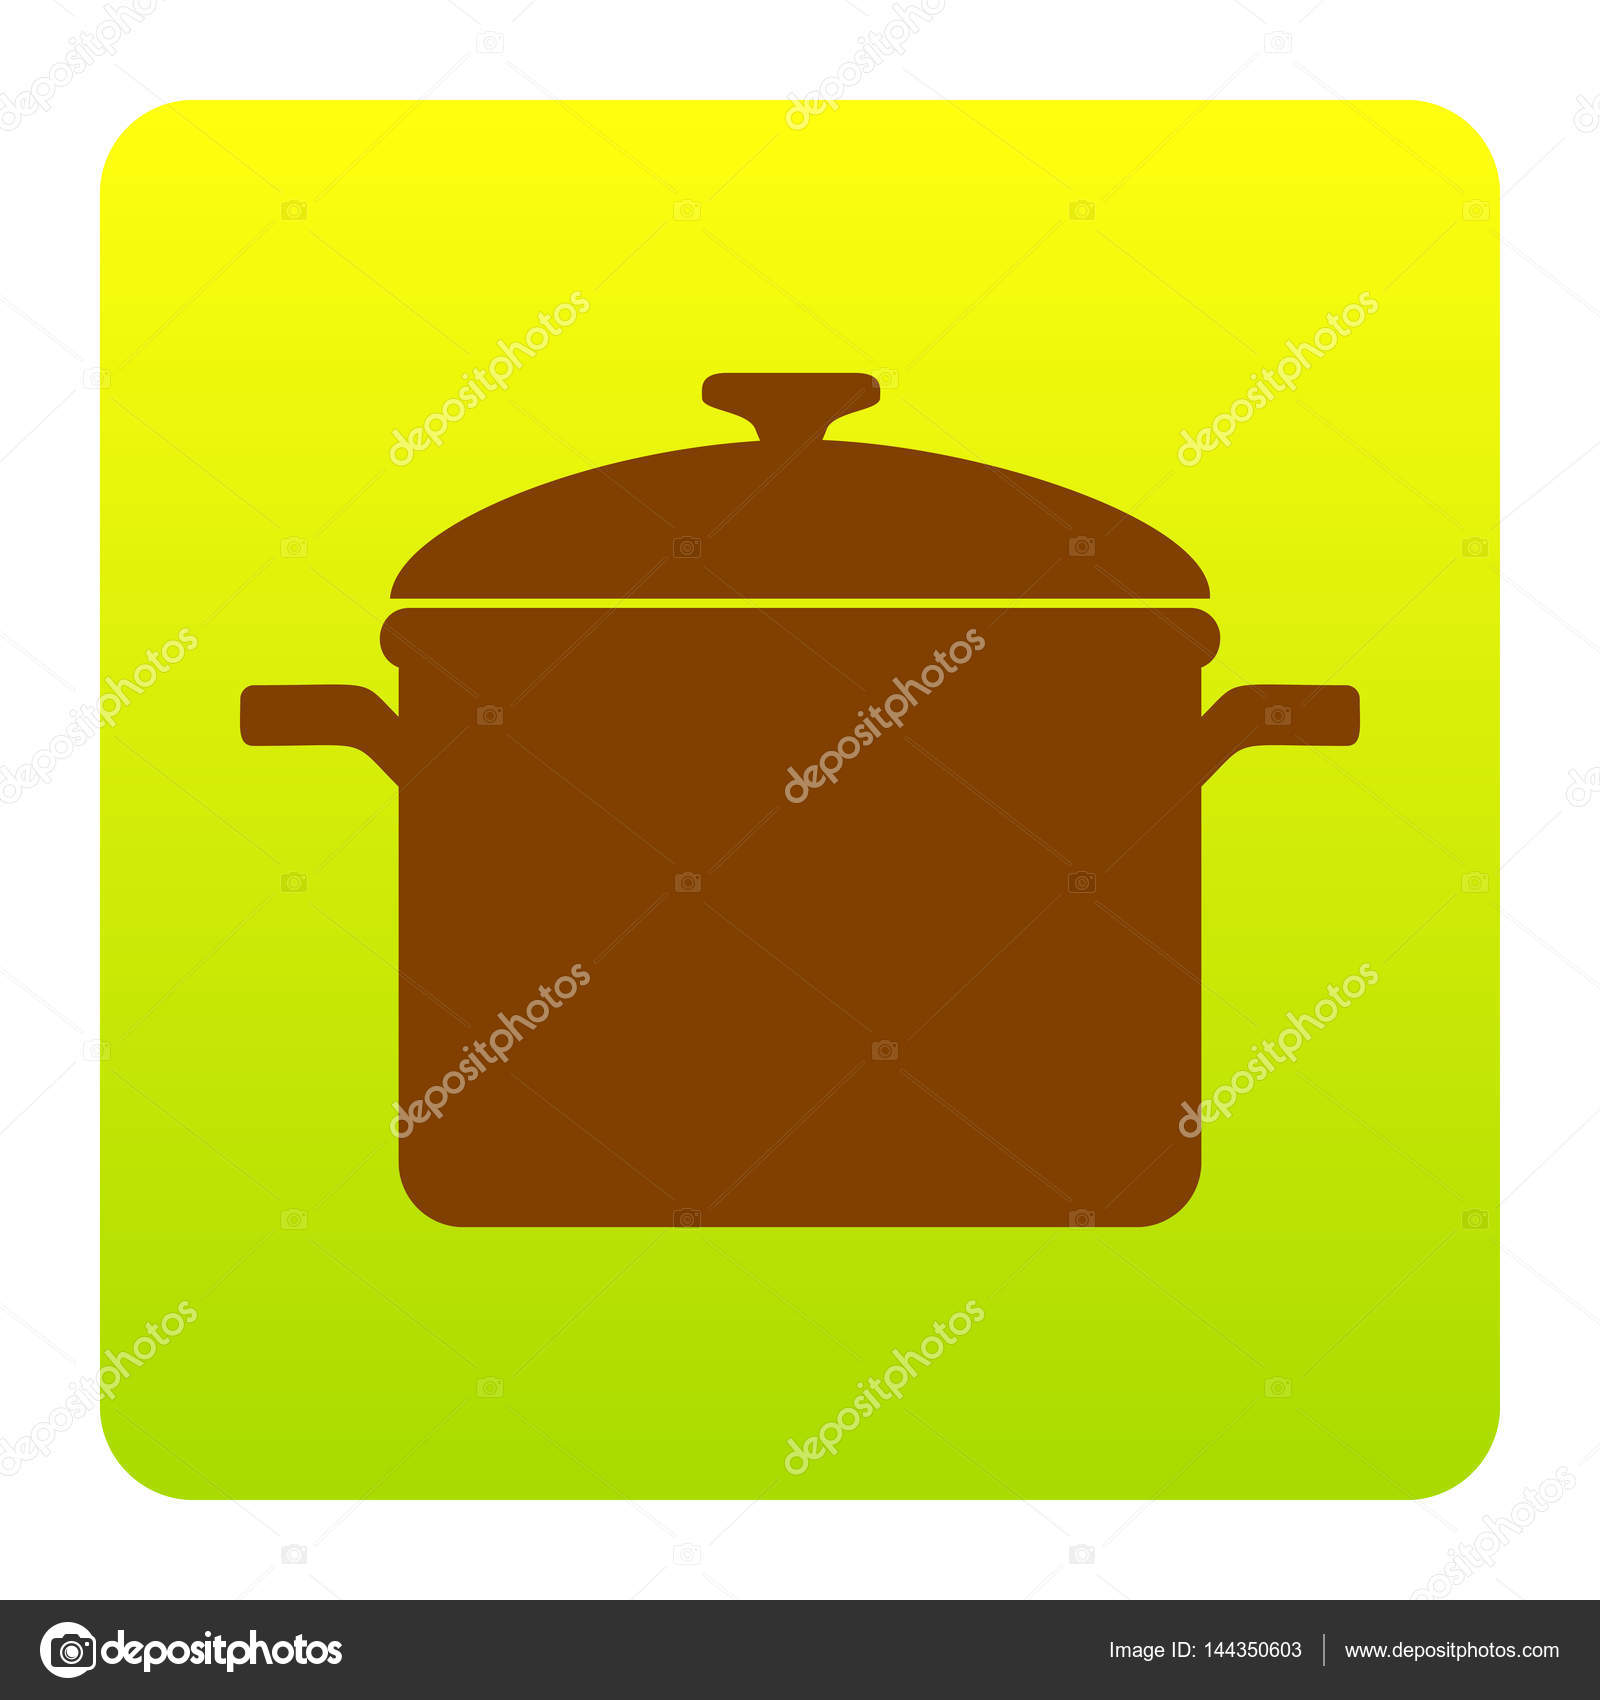 cooking pan sign vector brown icon at green yellow gradient square rh depositphotos com Spoon Clip Art Batter in Pan